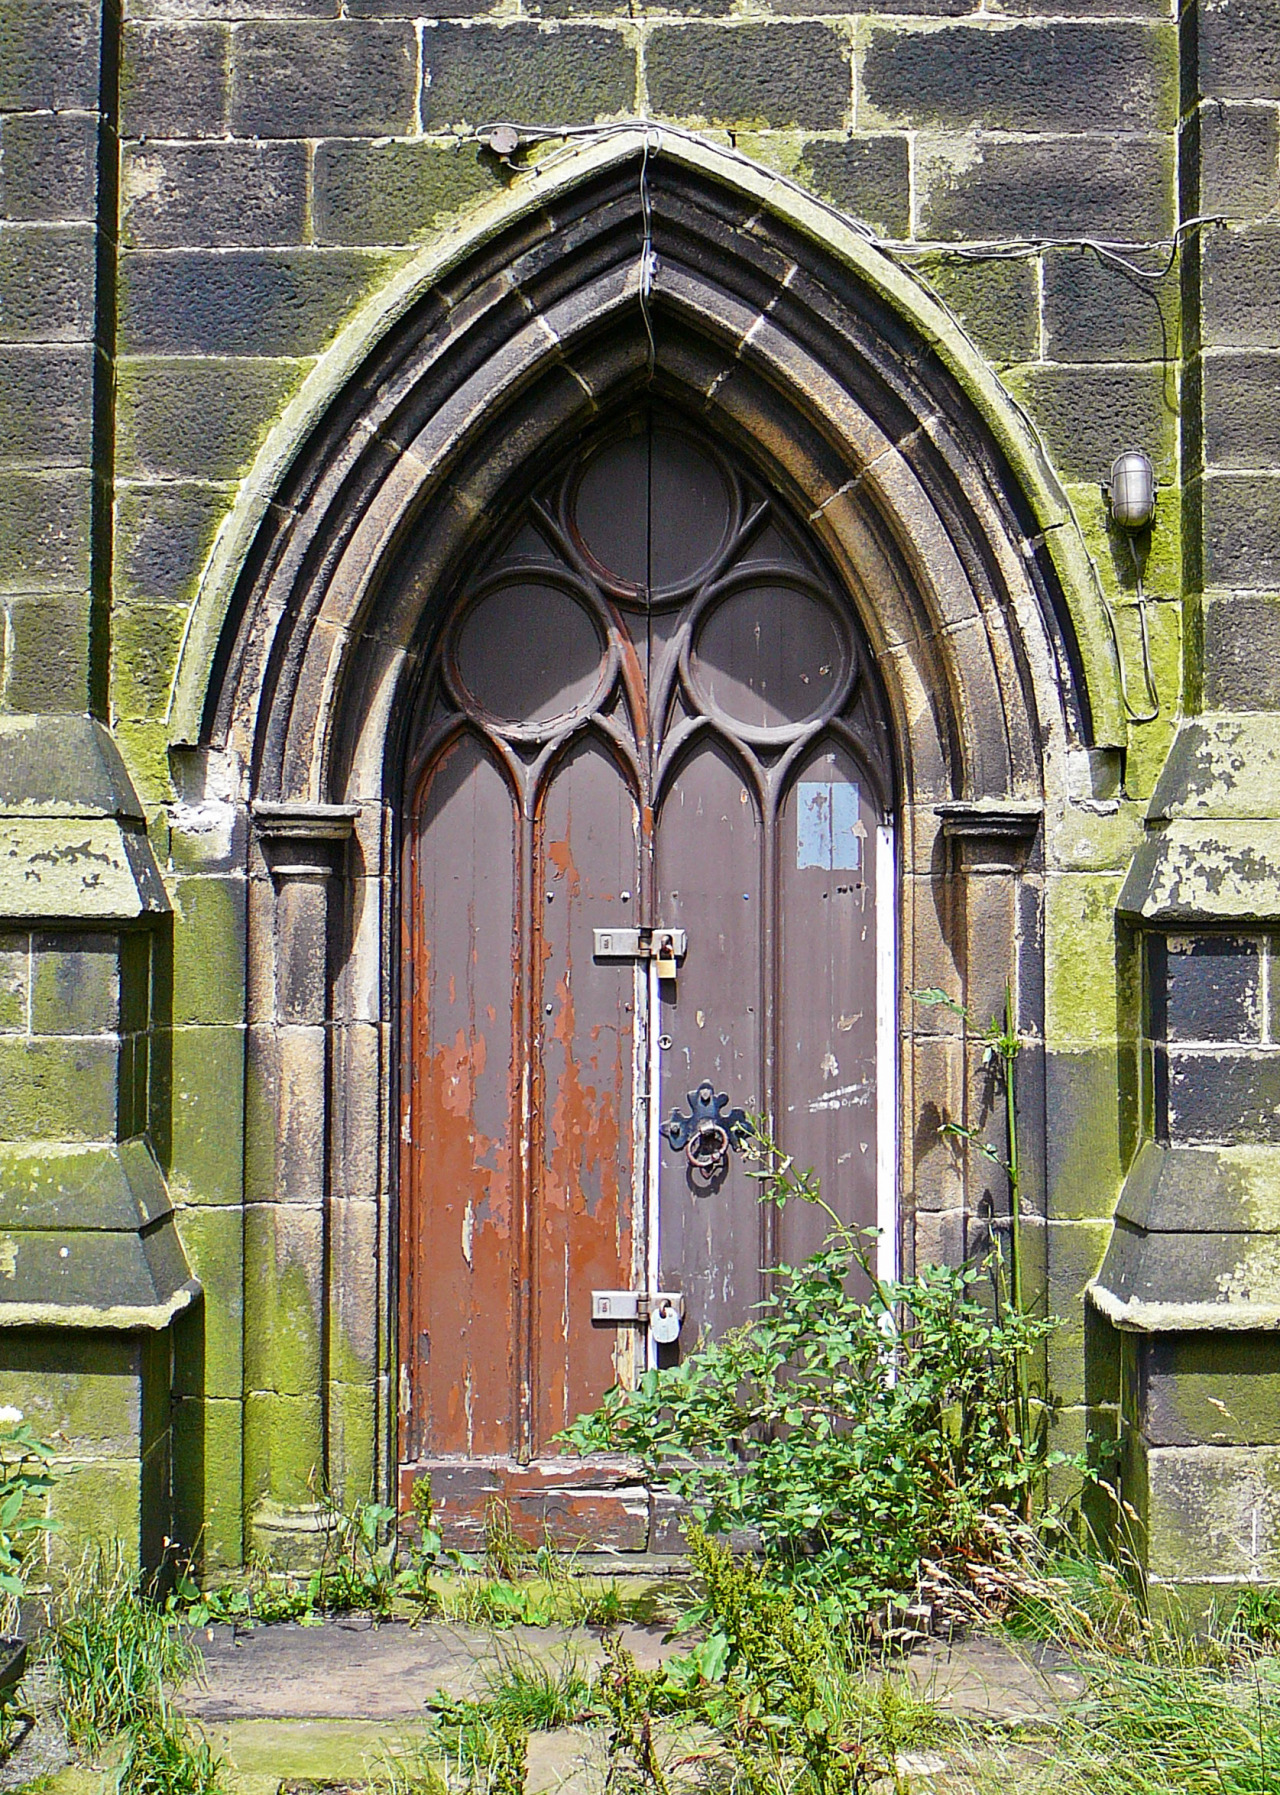 abandonedography:  St Paul's Church - Abandoned, boarded-up, and for sale by Tim Green